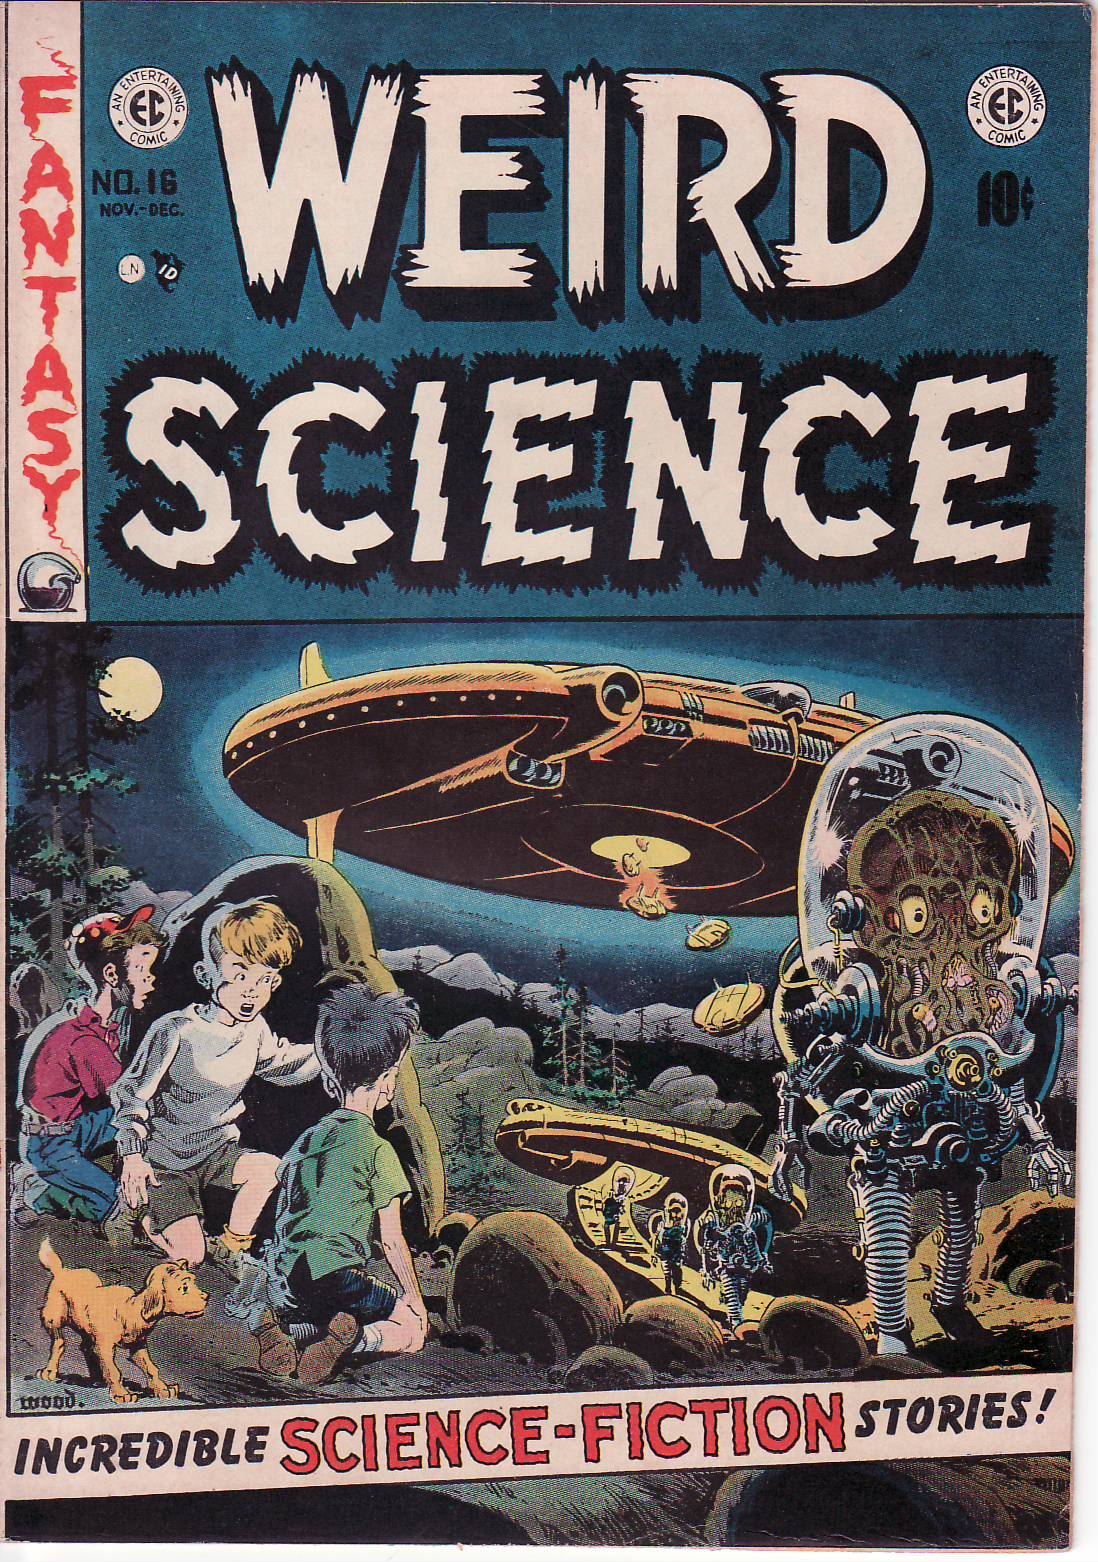 Couverture de Weird Science n°16 © 1950, EC Comics, William Gaines et Al Feldstein